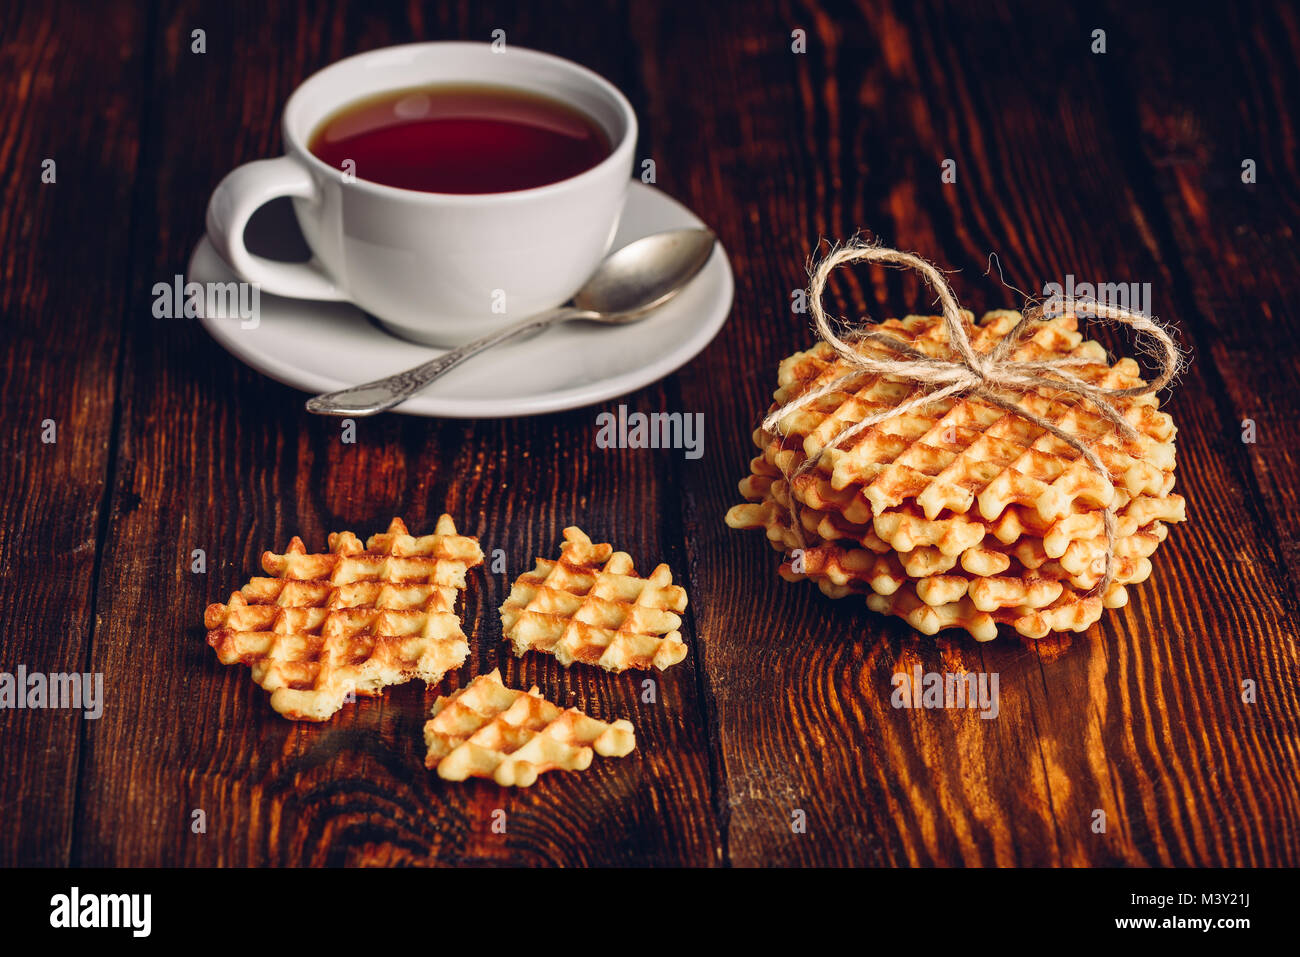 Rustic Breakfast with Hommade Waffles and Cup Tea. - Stock Image